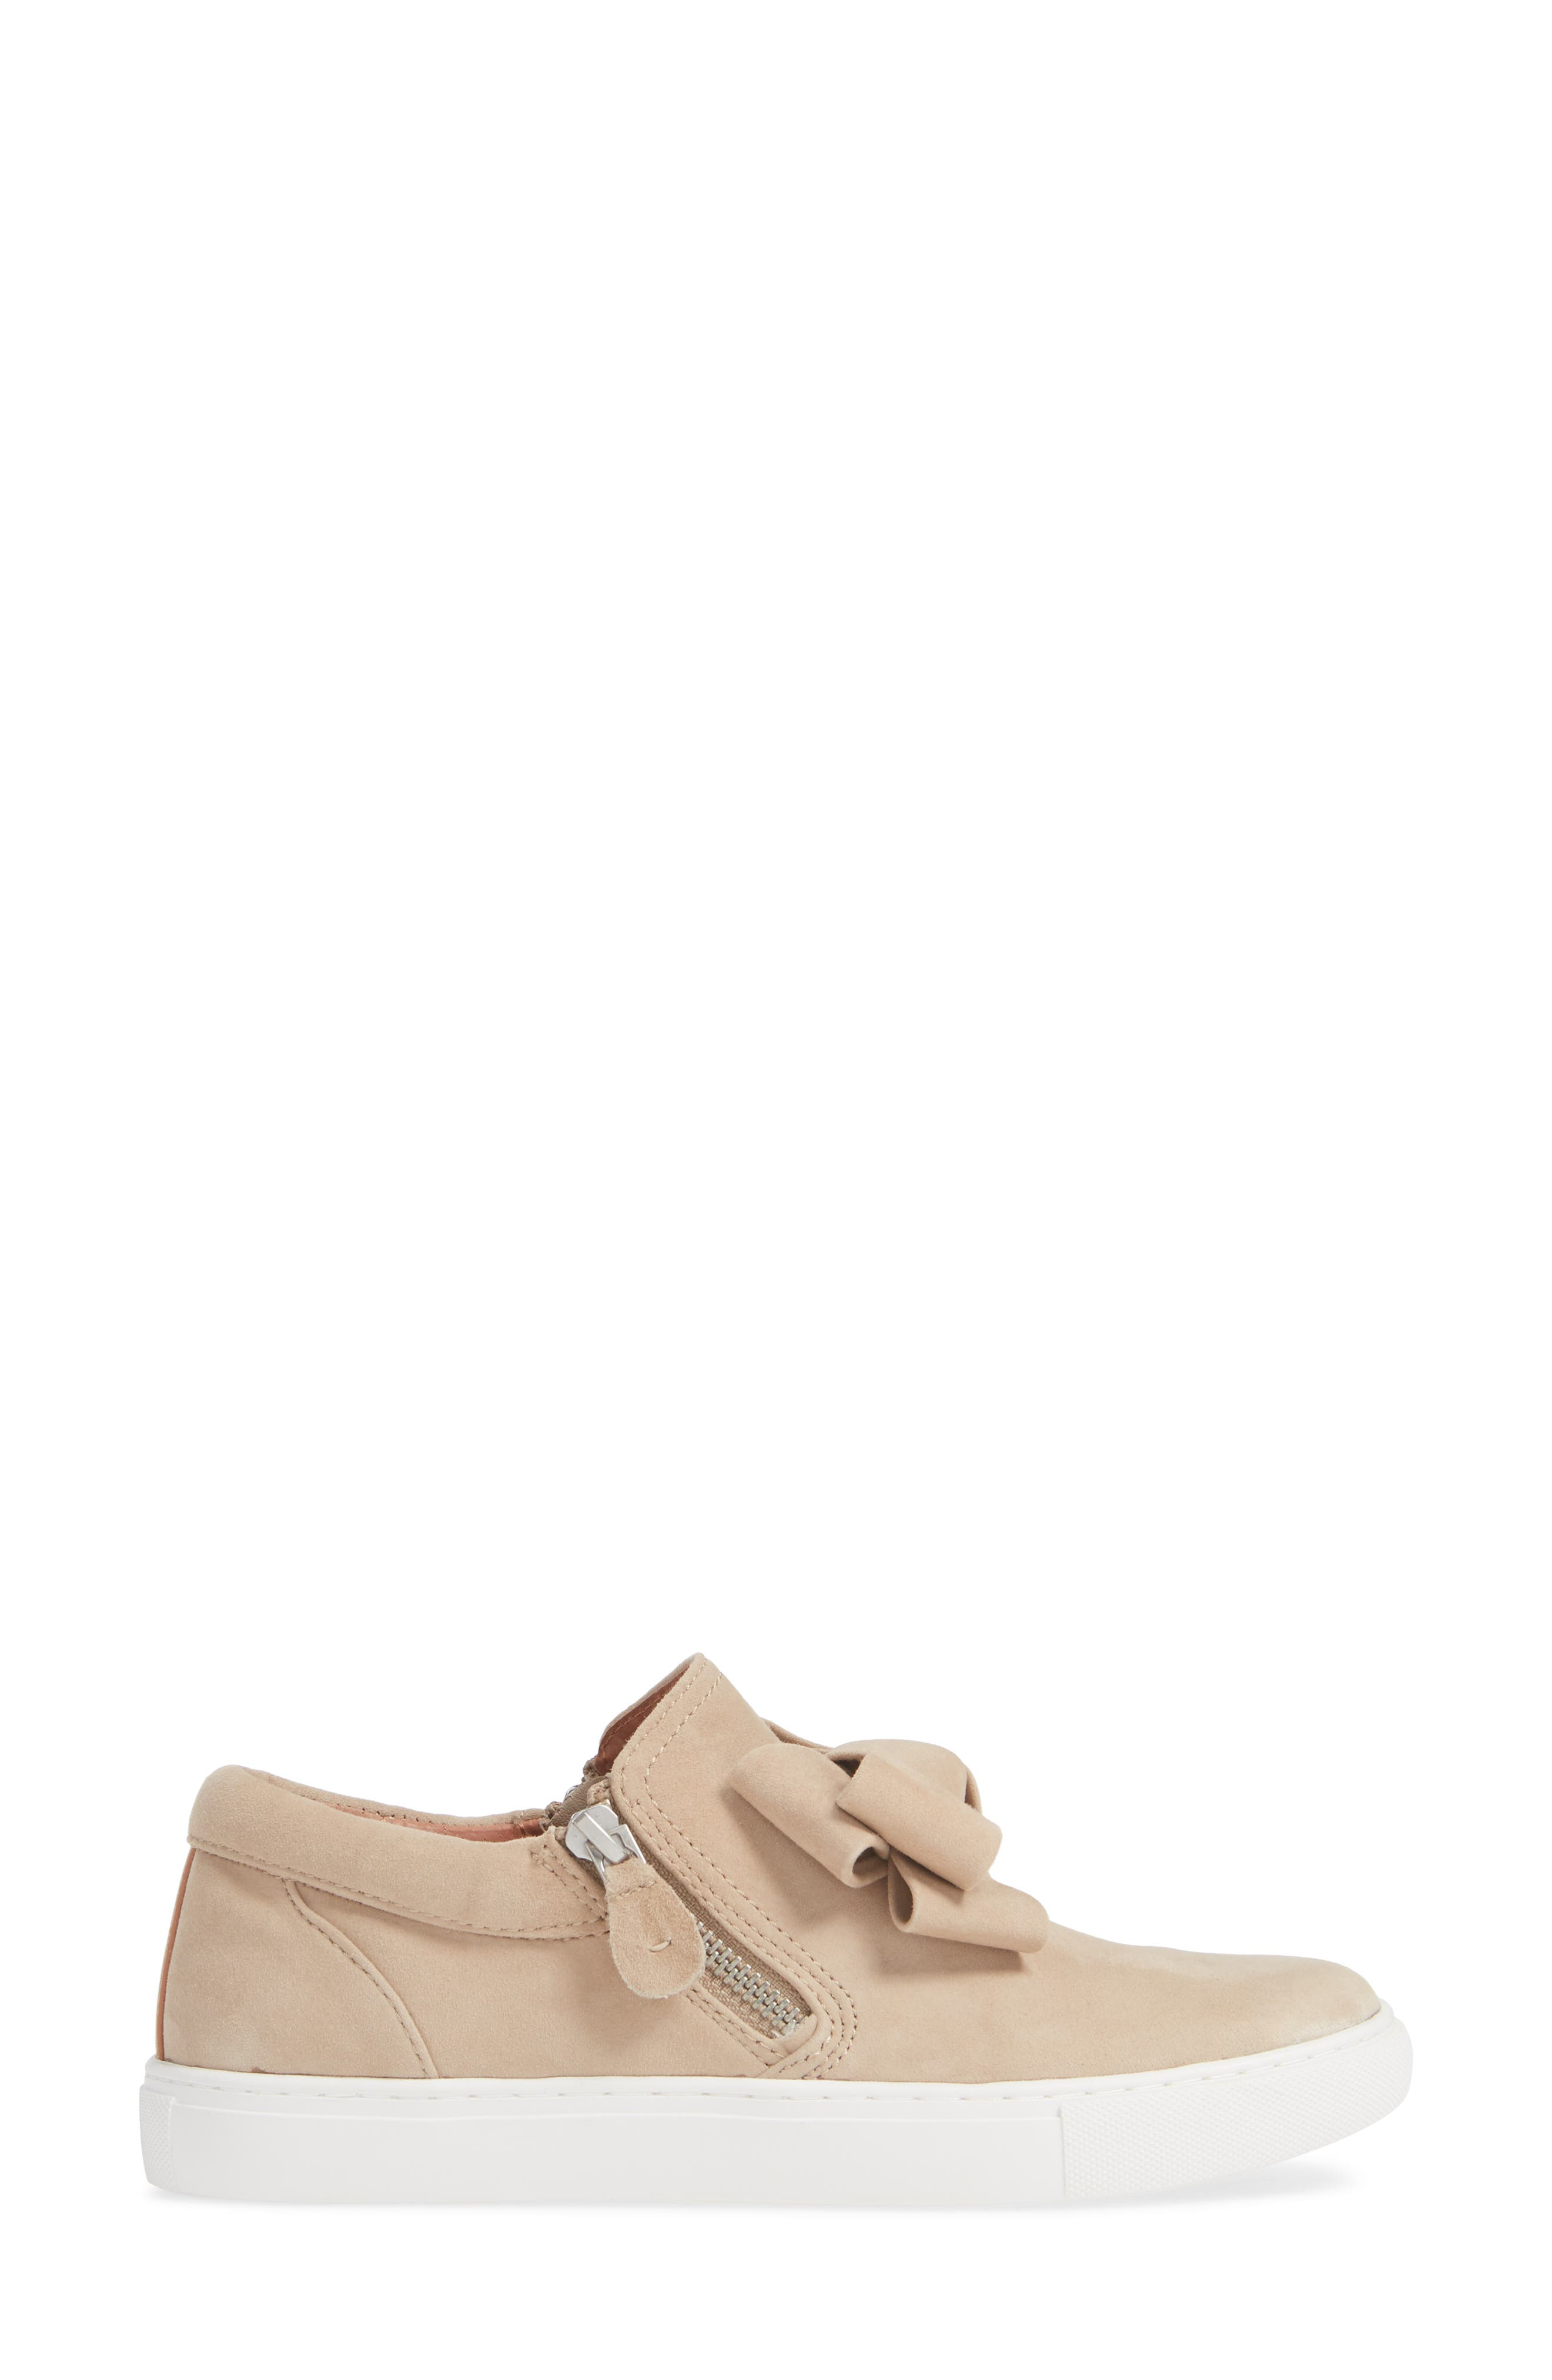 GENTLE SOULS BY KENNETH COLE, Lowe Bow Sneaker, Alternate thumbnail 3, color, CAFE SUEDE